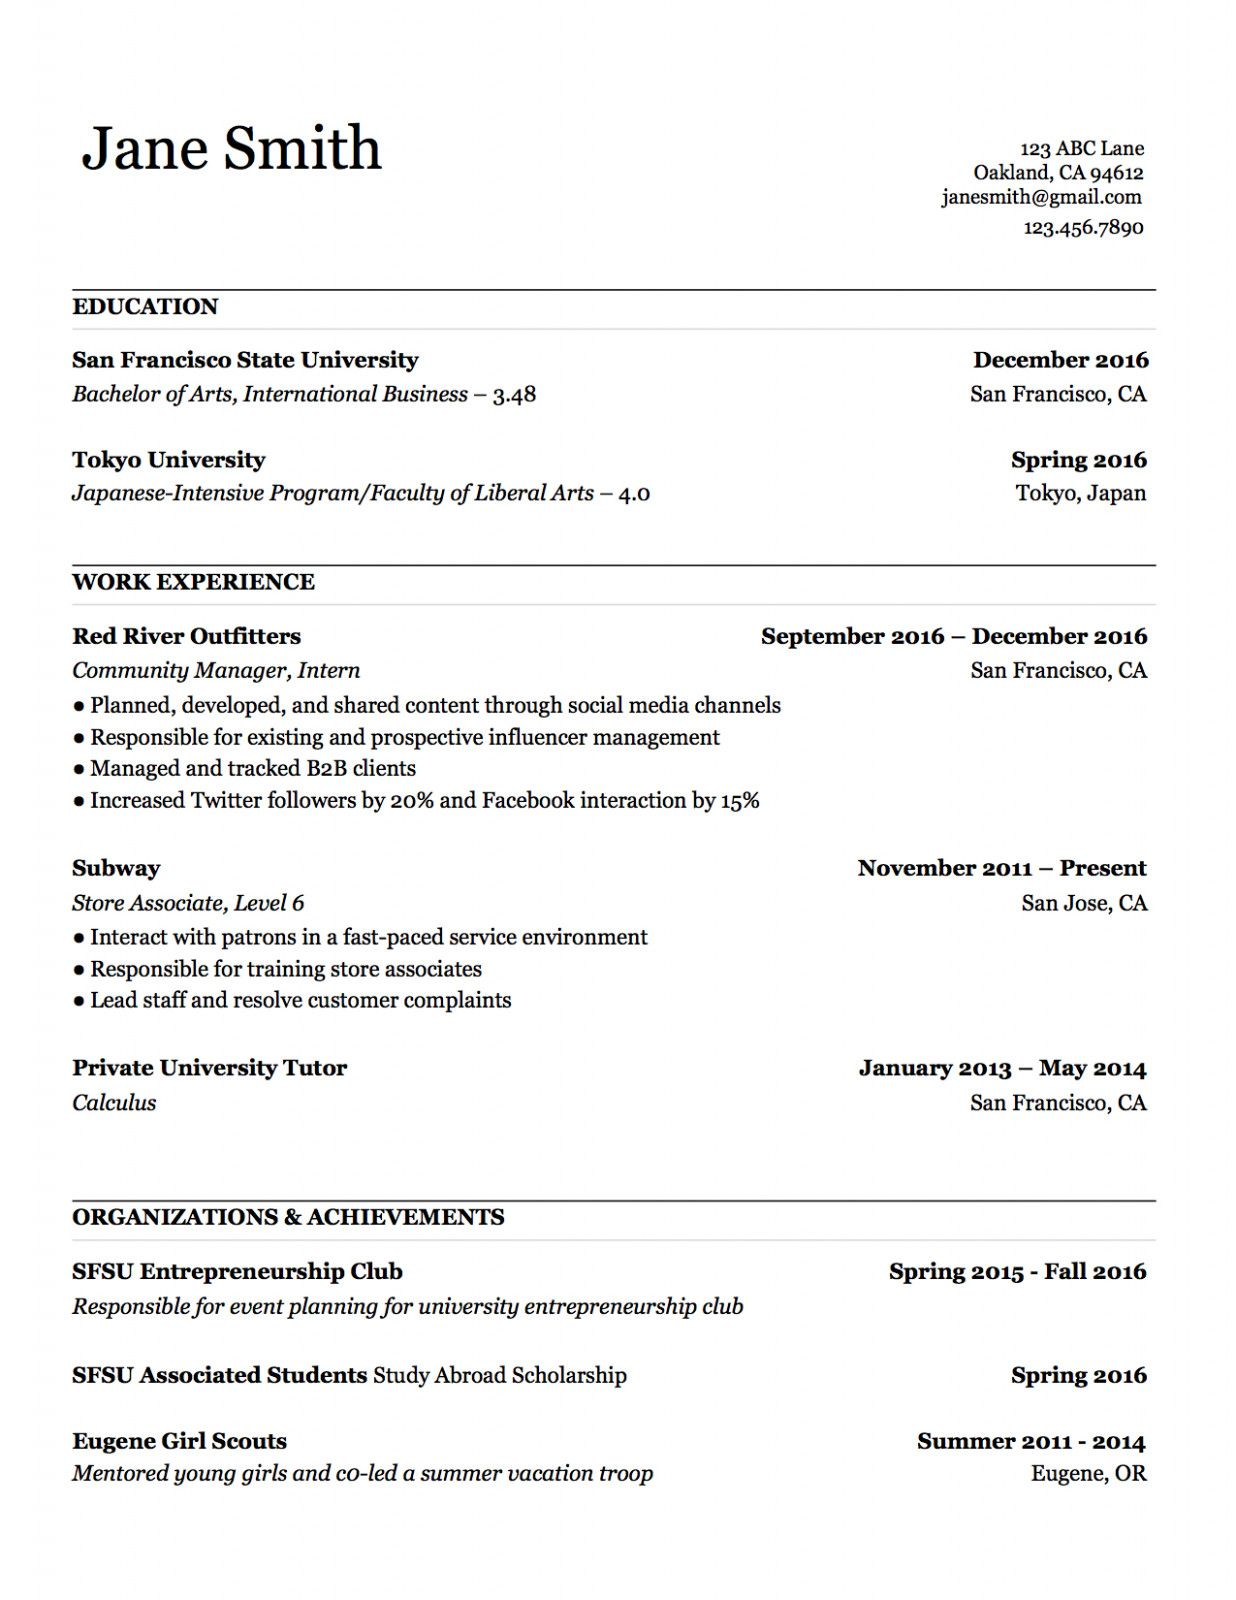 10 Copy Of A Primary Resume 10 Copy Of A Basic Resume